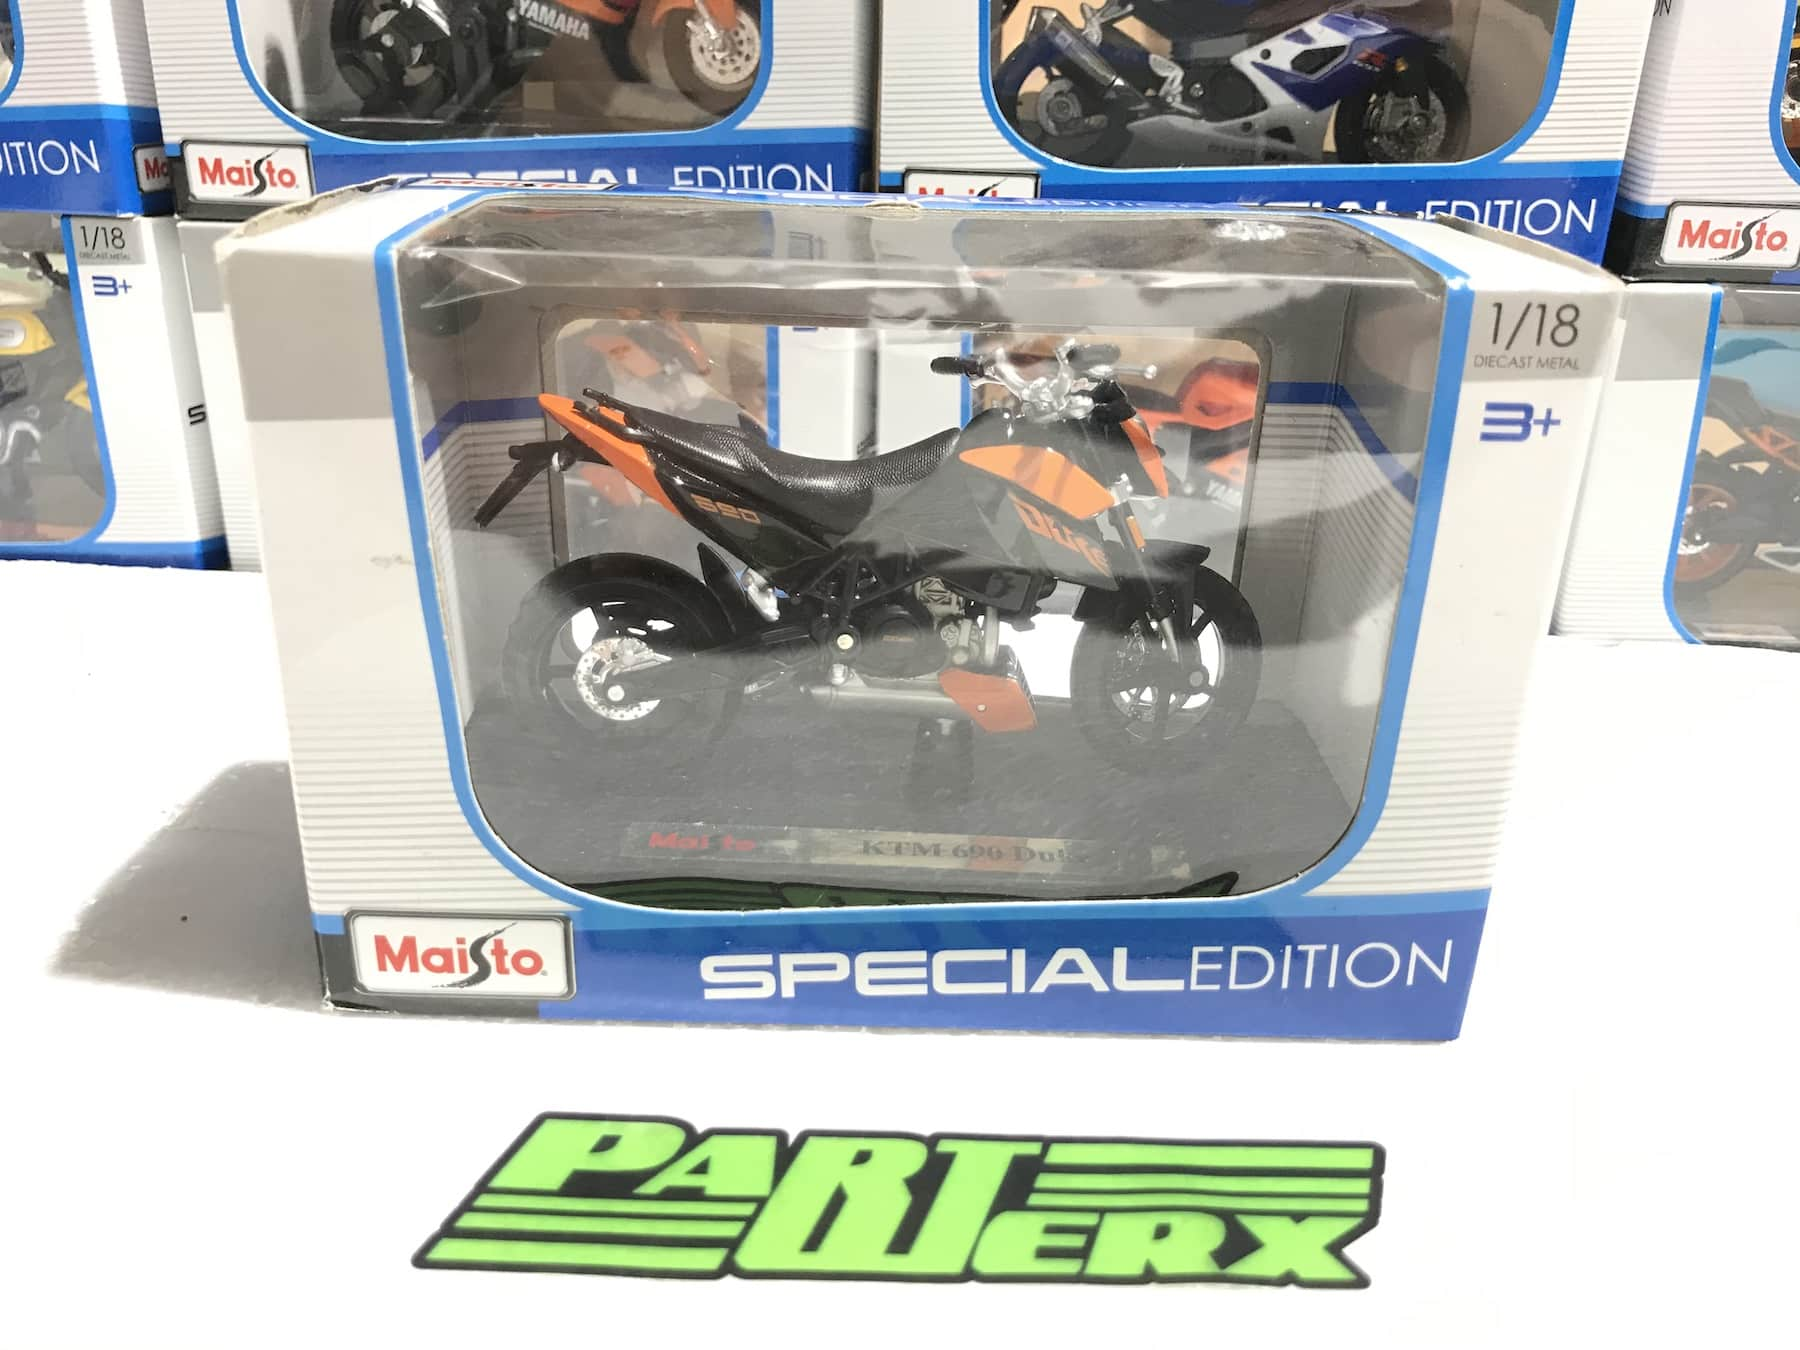 KTM 690 Duke 1:18 Motorbike Scale Model Motorcycle Toy Dads Fathers Kids Gift Birthday Present